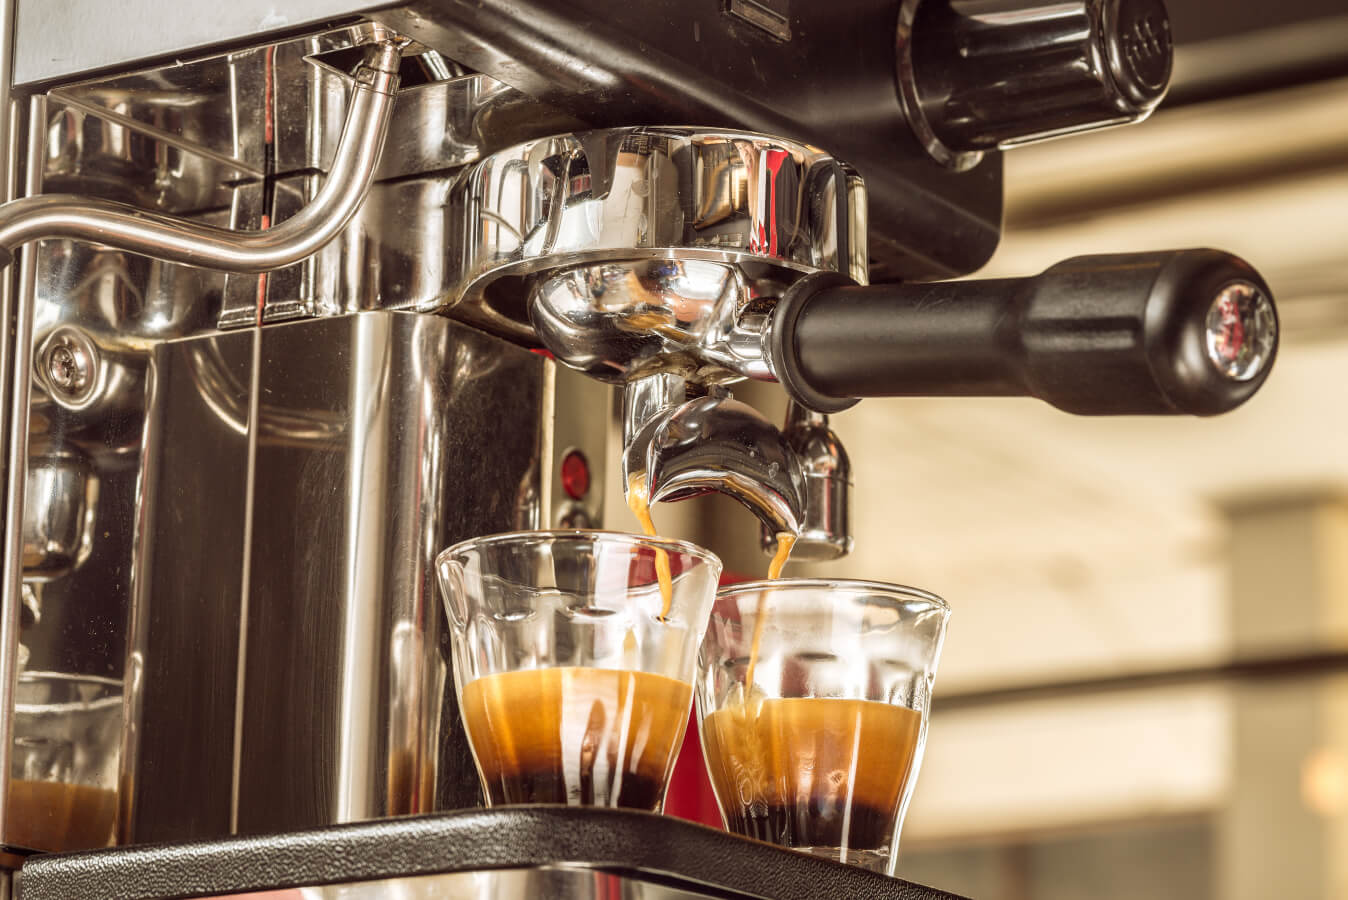 Capital caffeine. Have a shot at these five top Edinburgh coffee houses